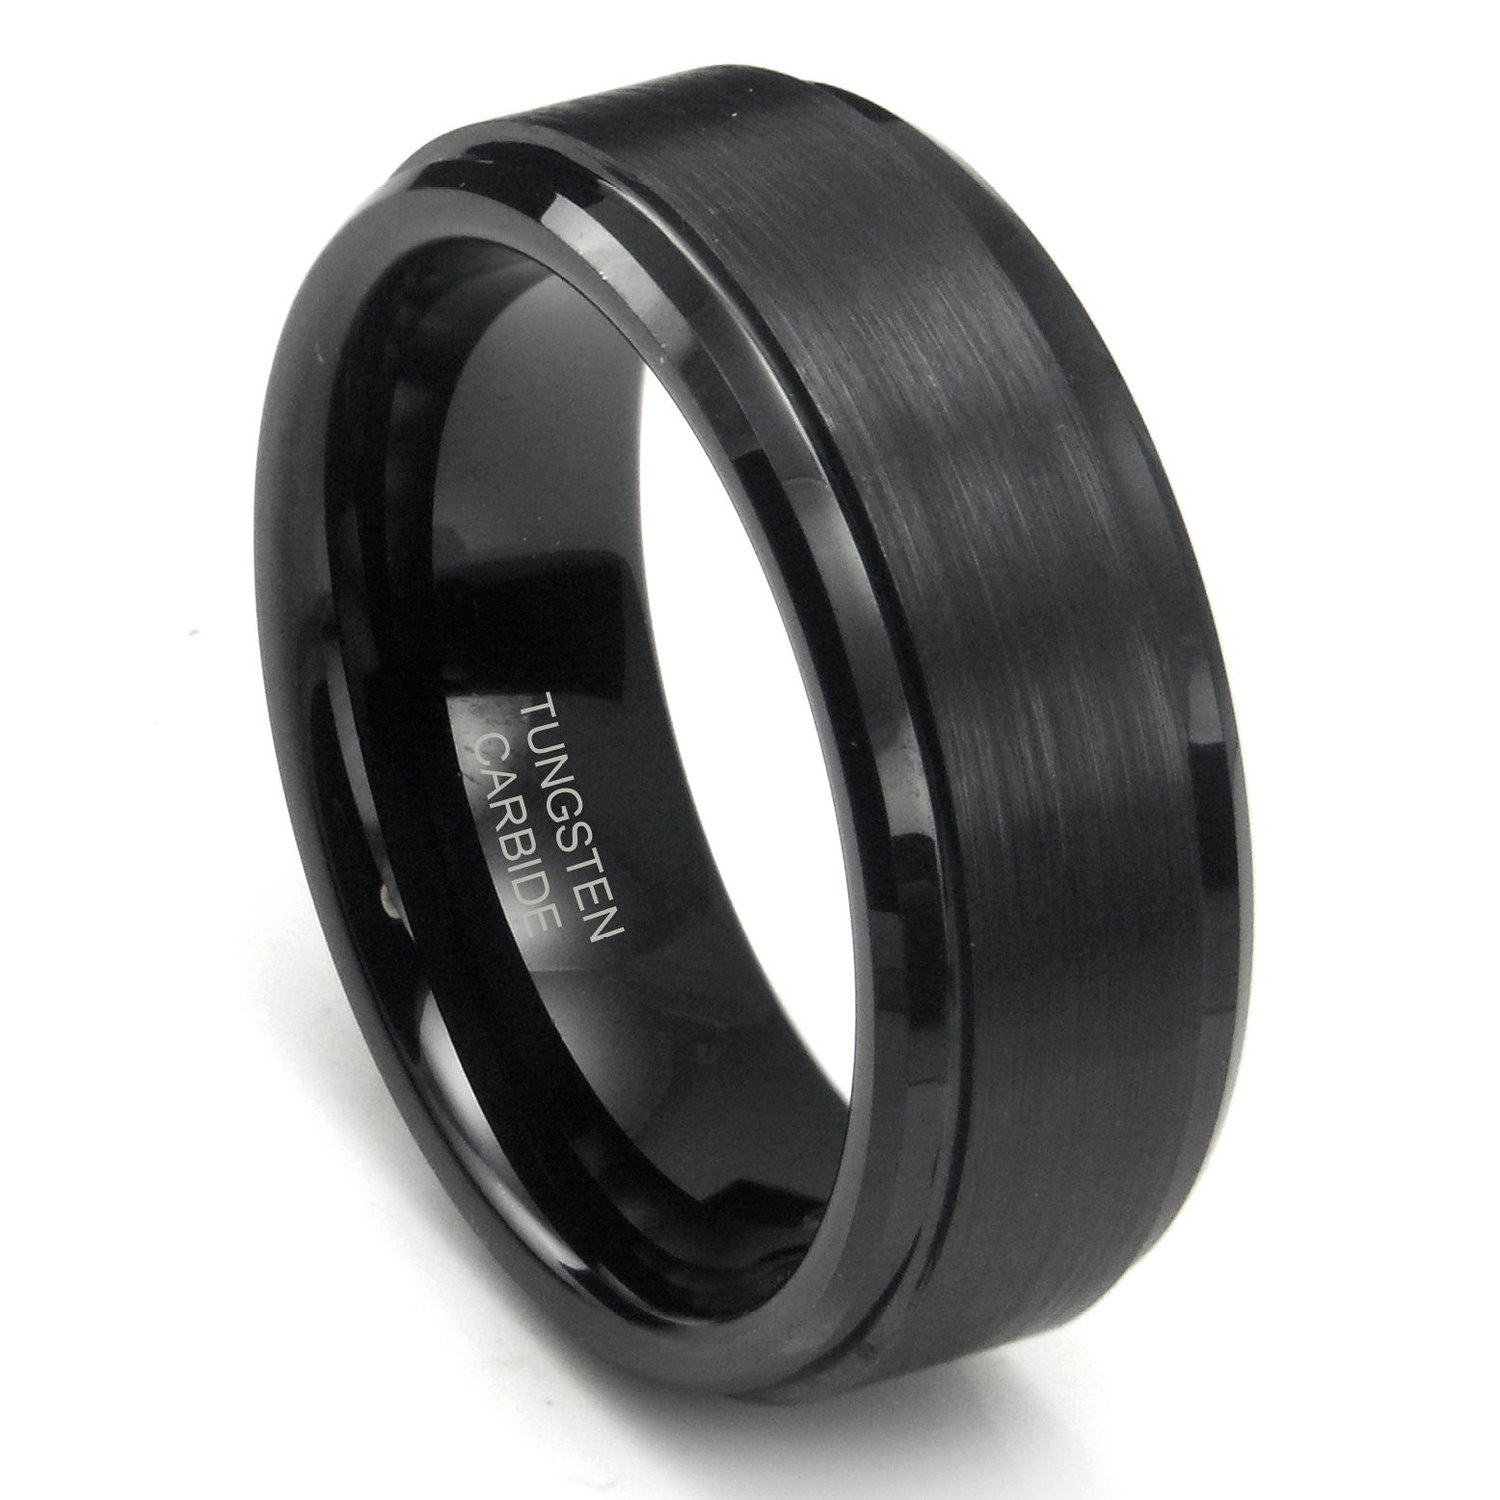 men's wedding bands | weddinginclude | wedding ideas inspiration blog